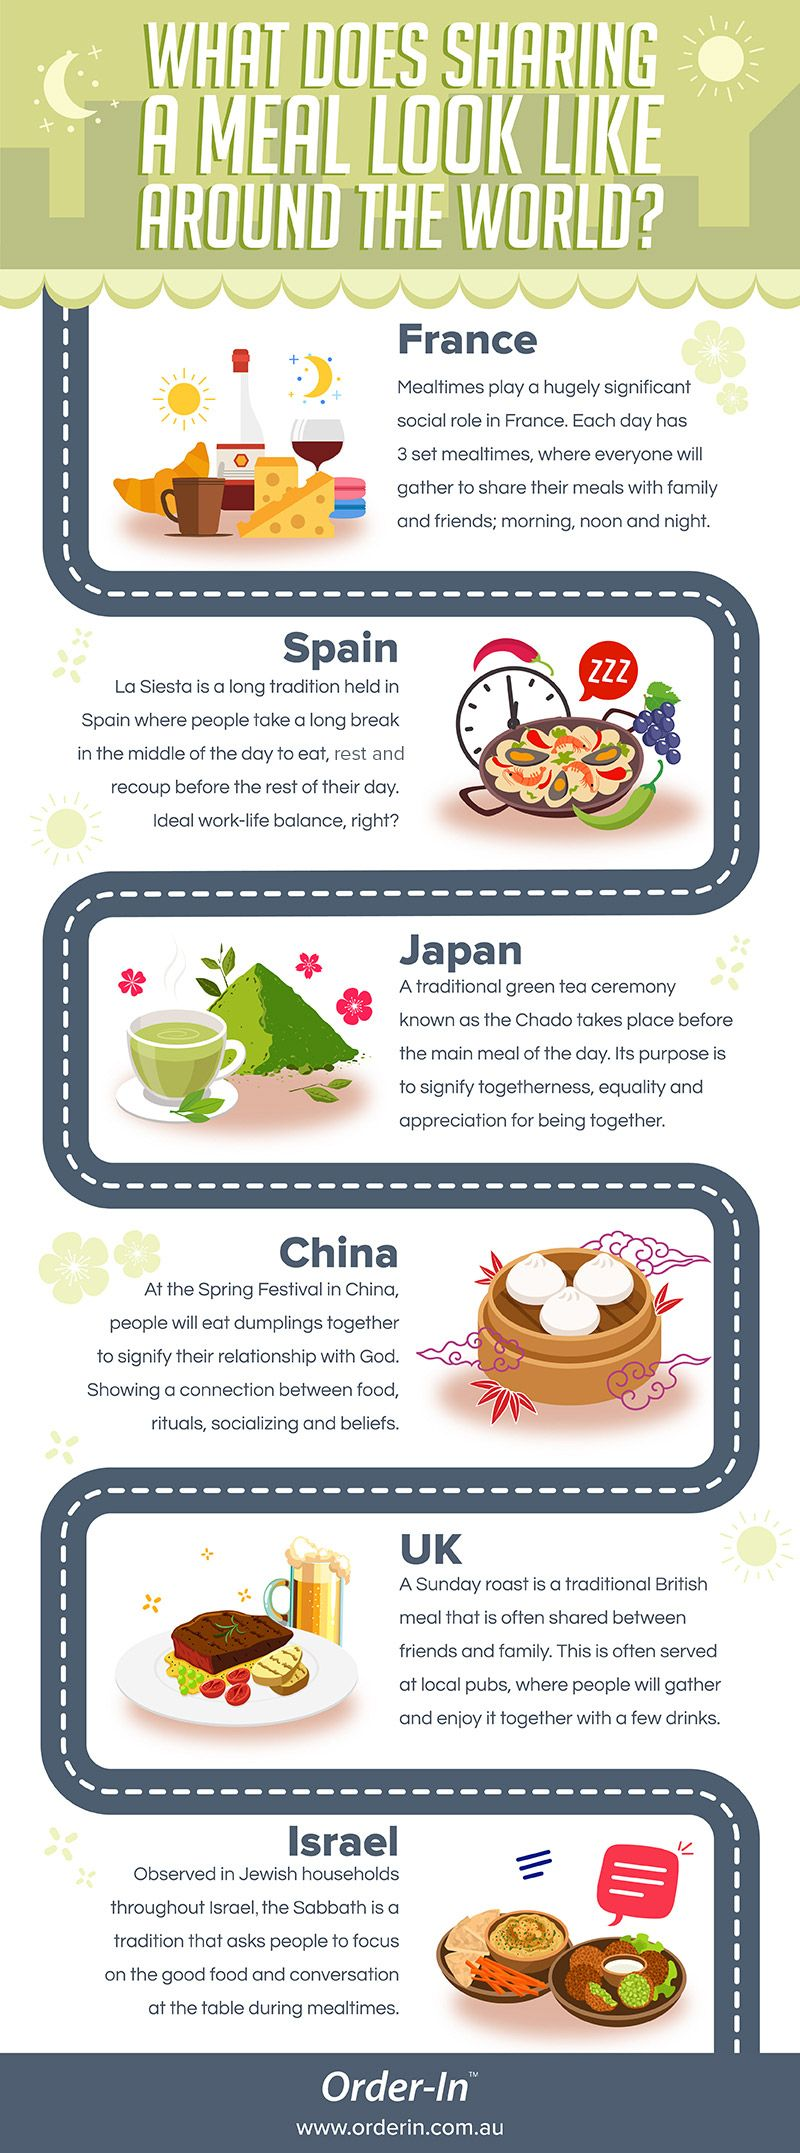 sharing a meal around the world infographic